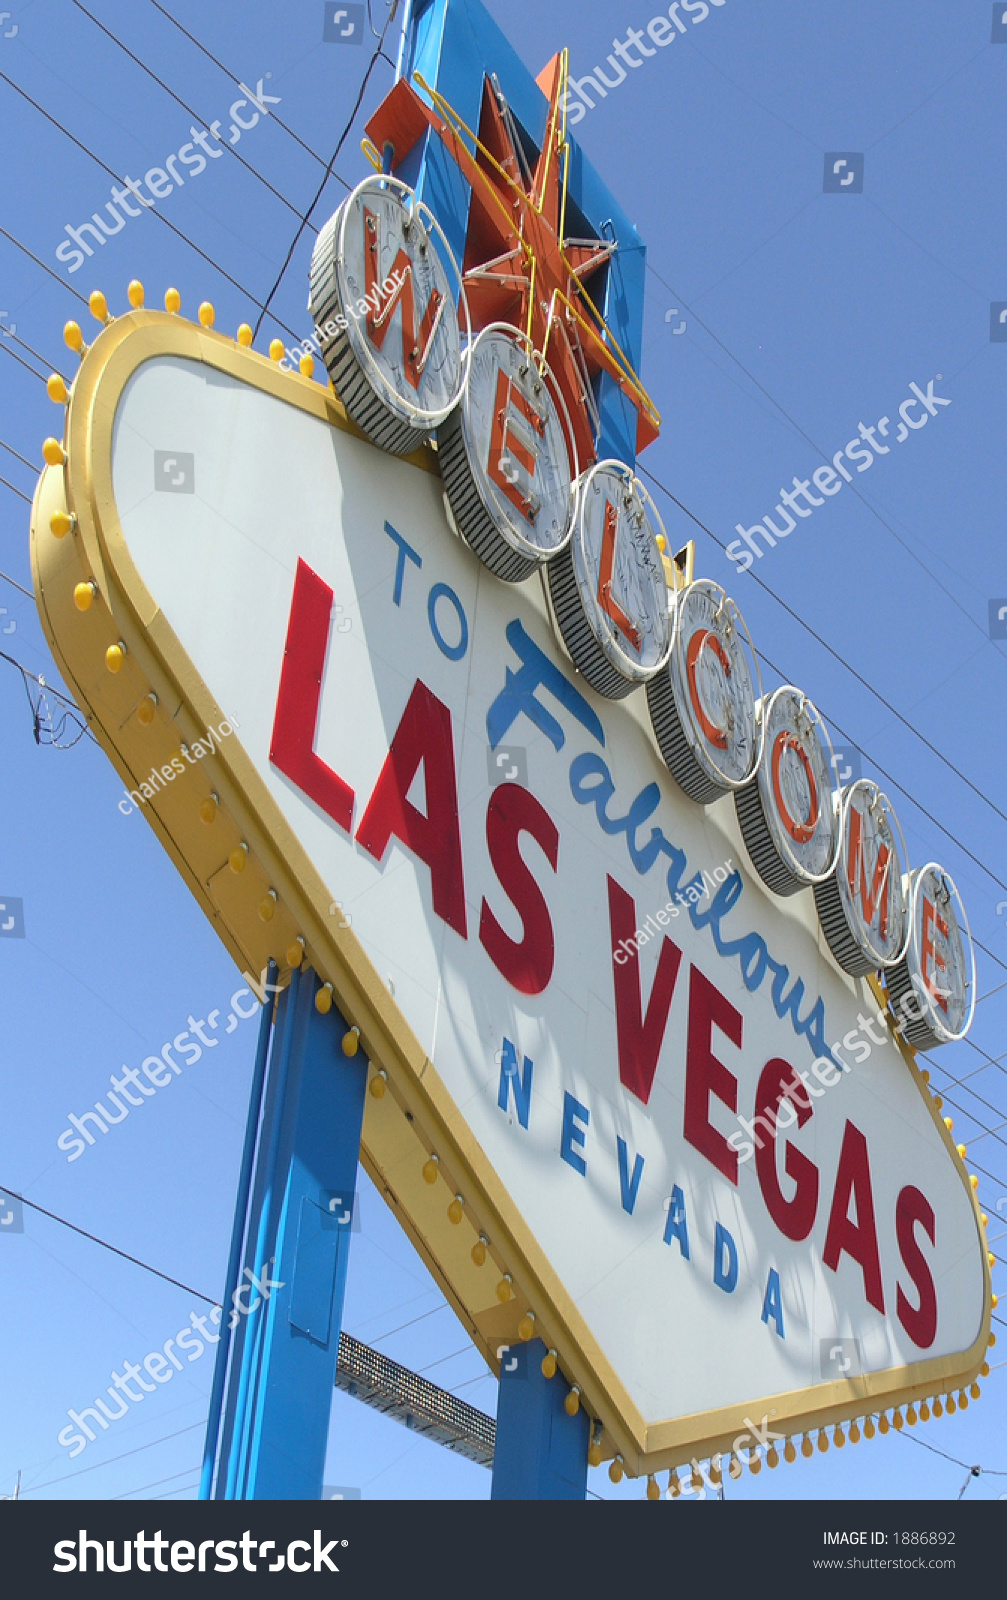 essay in vegas Free essays on trip to las vegas get help with your writing 1 through 30.